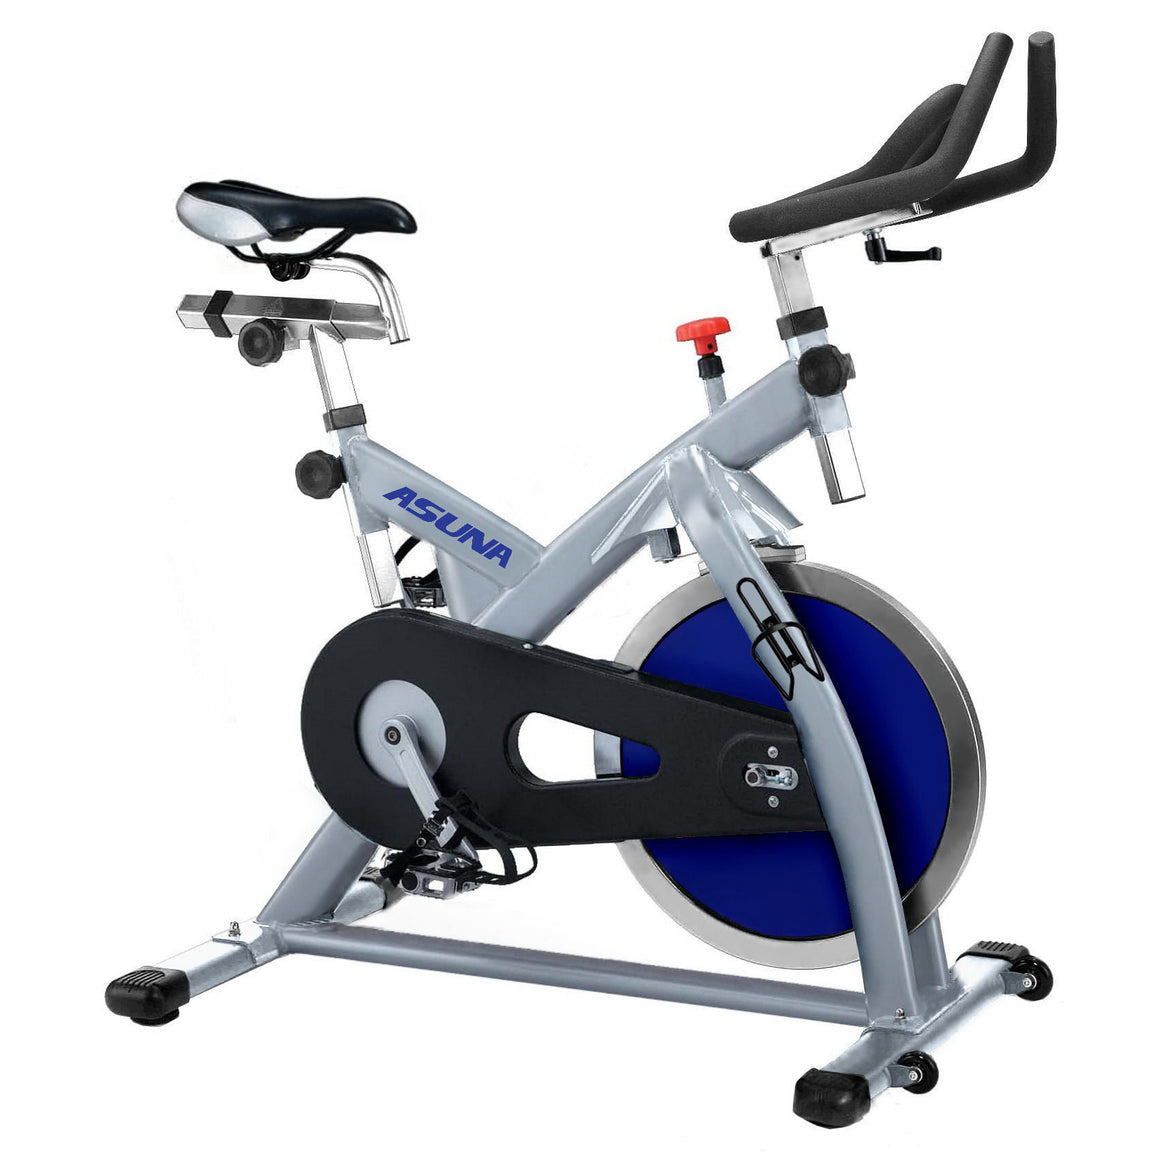 ASUNA 4100 Commercial Indoor Cycling Bike - Indoor Cyclery